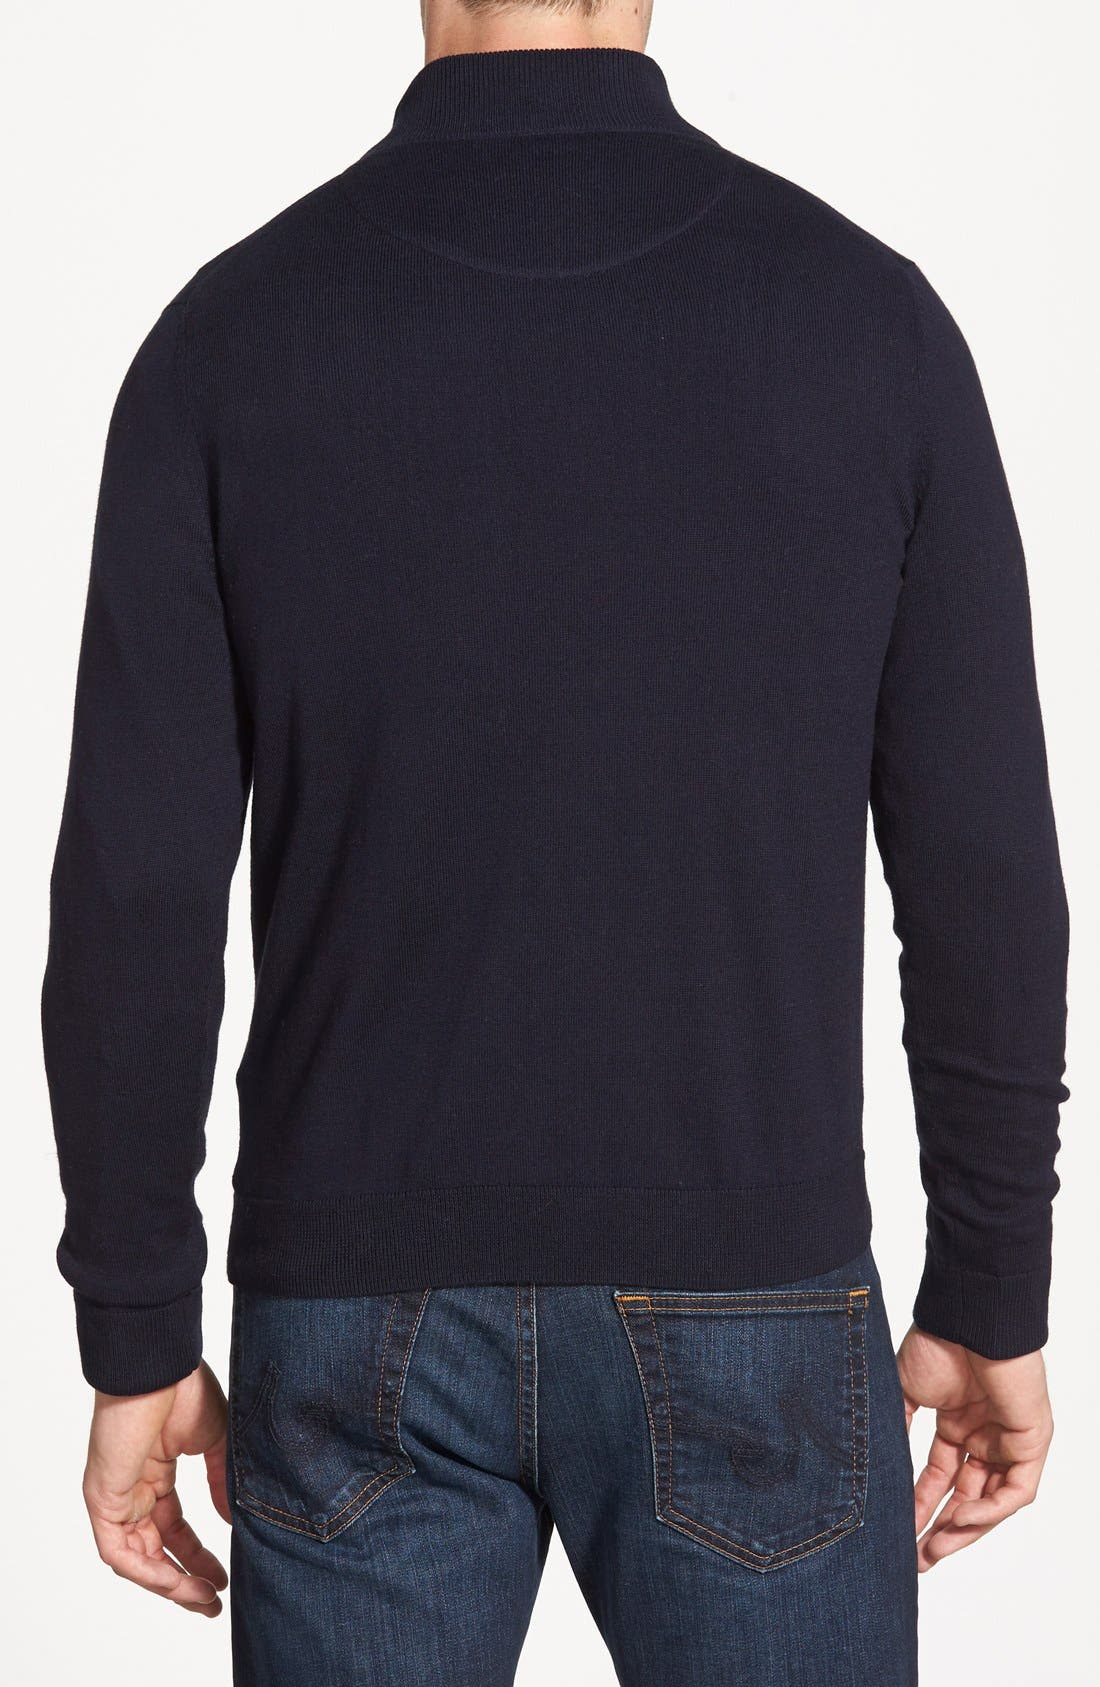 Half Zip Cotton & Cashmere Pullover,                             Alternate thumbnail 8, color,                             NAVY NIGHT